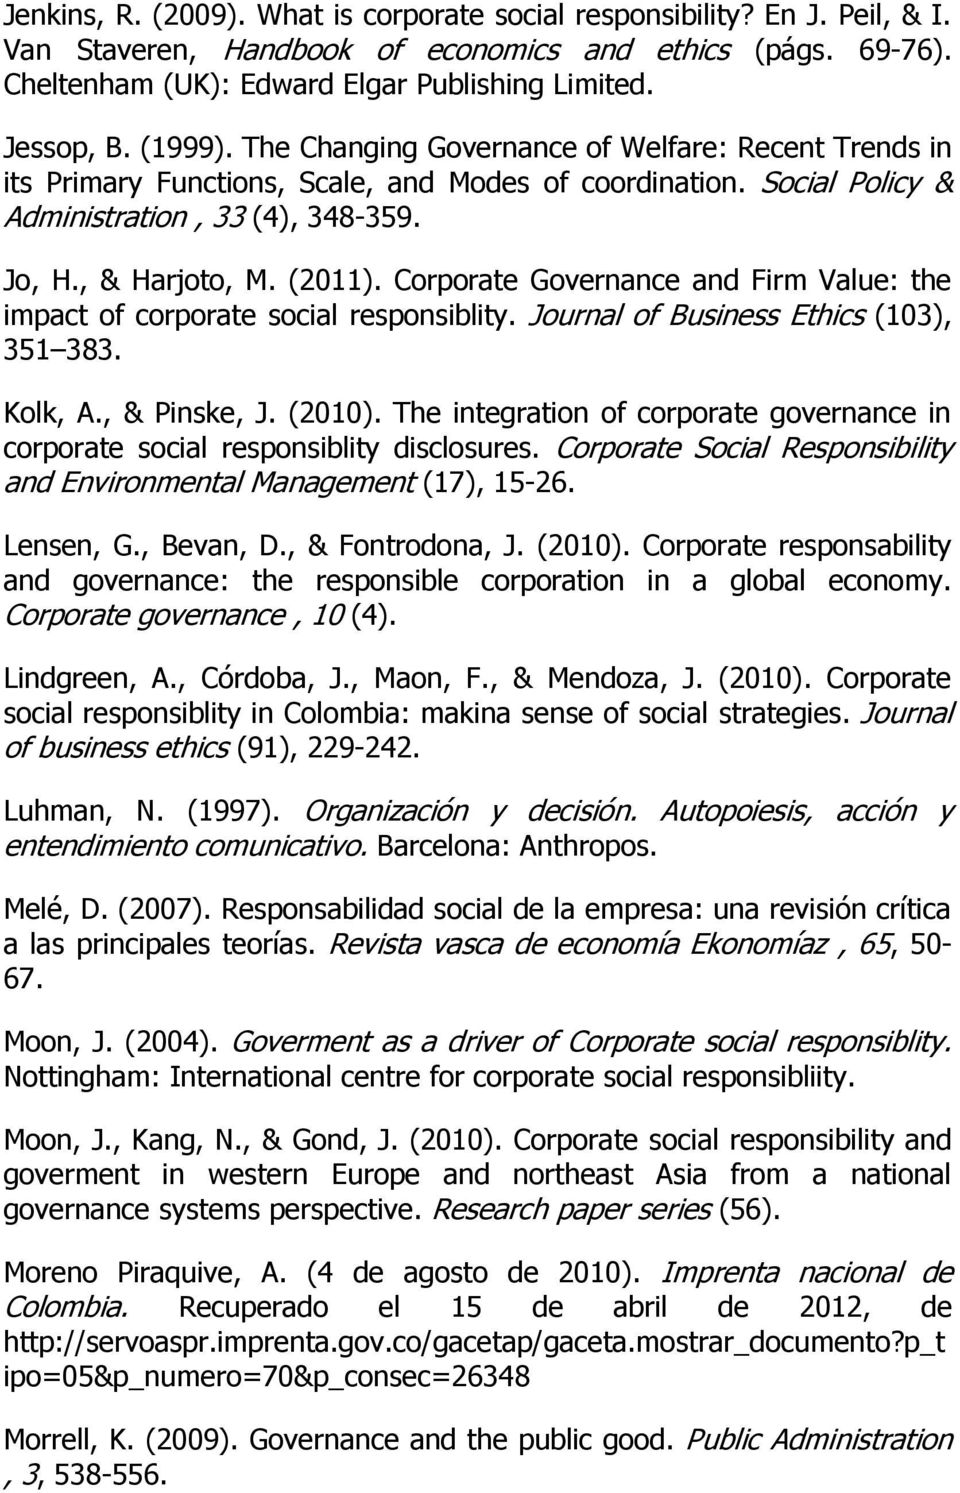 Corporate Governance and Firm Value: the impact of corporate social responsiblity. Journal of Business Ethics (103), 351 383. Kolk, A., & Pinske, J. (2010).